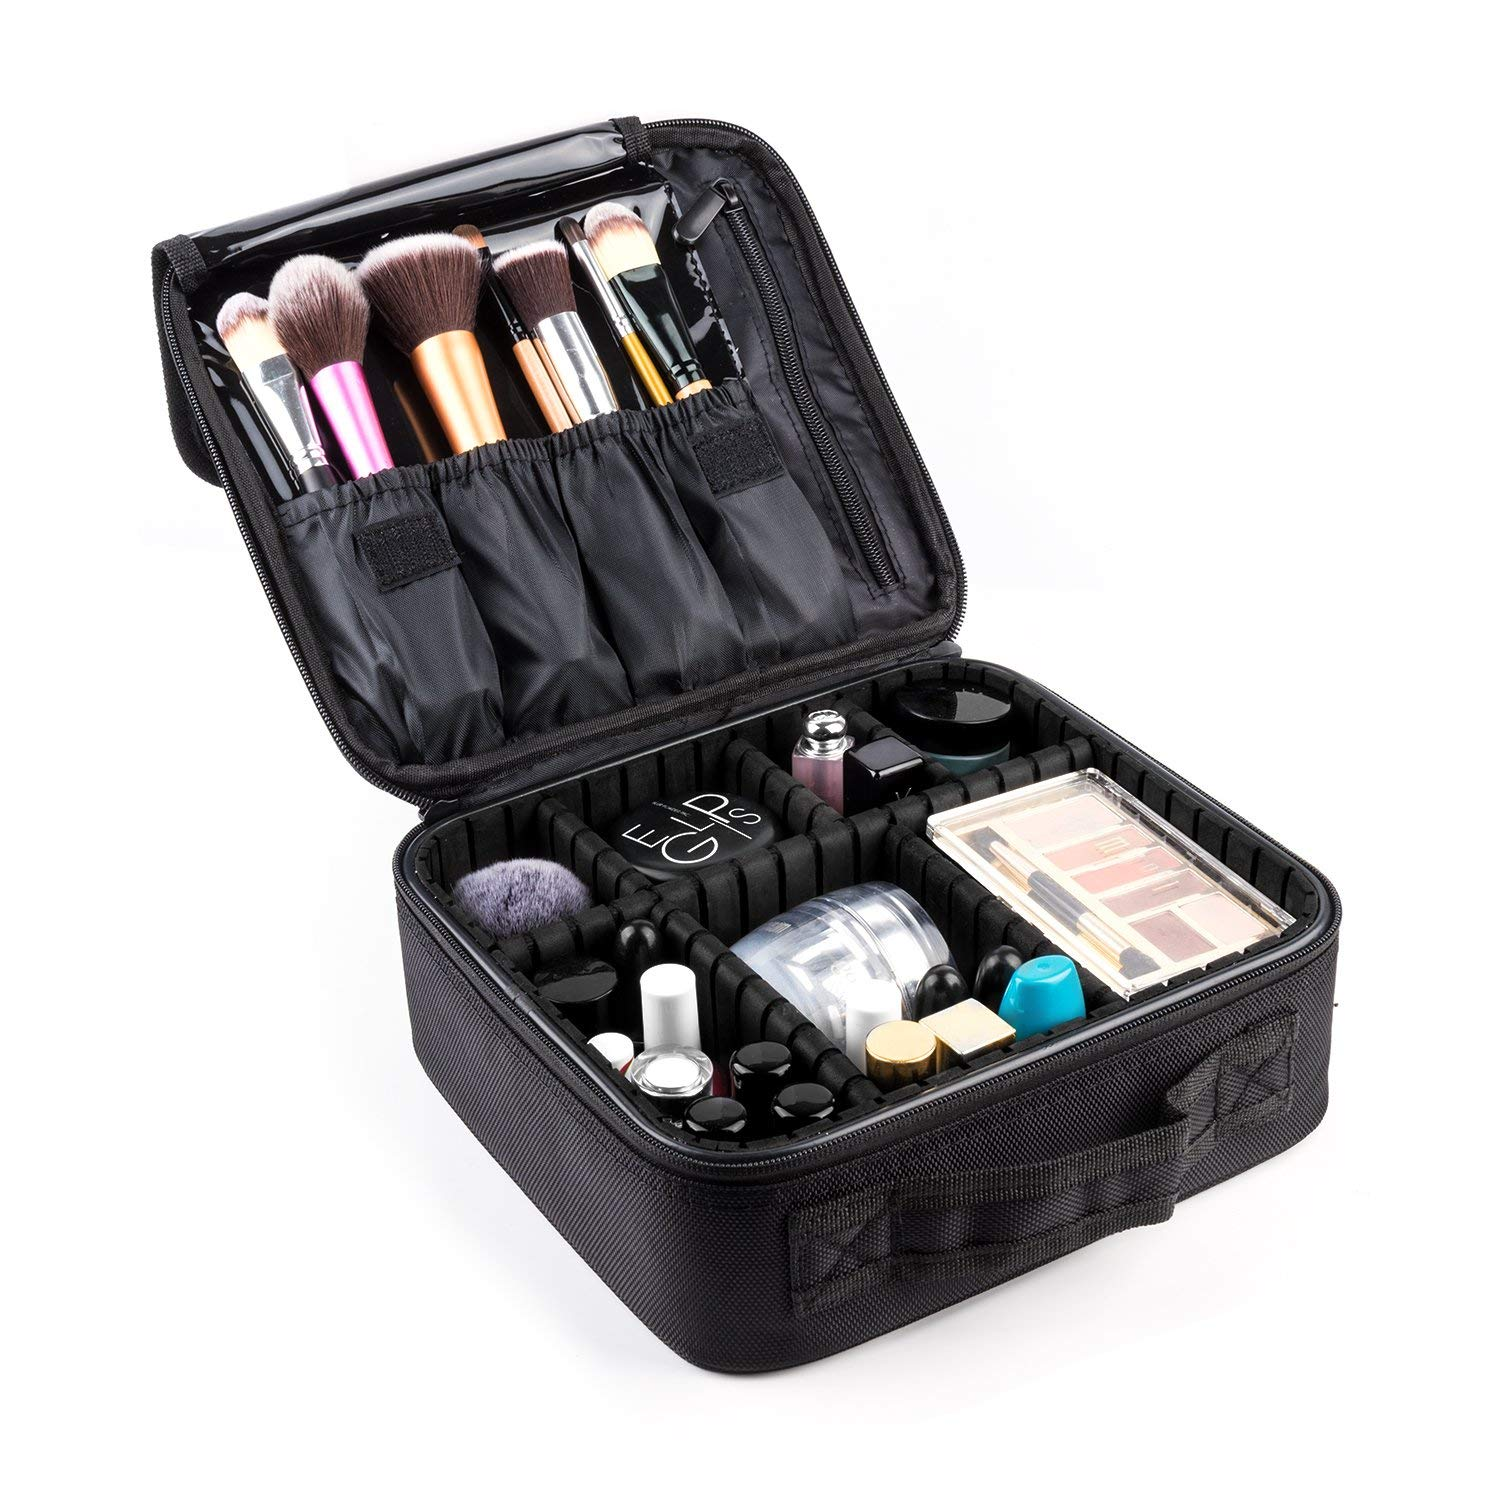 Makeup Train Case,FORTECH Makeup Case Organizer Portable Artist Storage Bag for Cosmetics